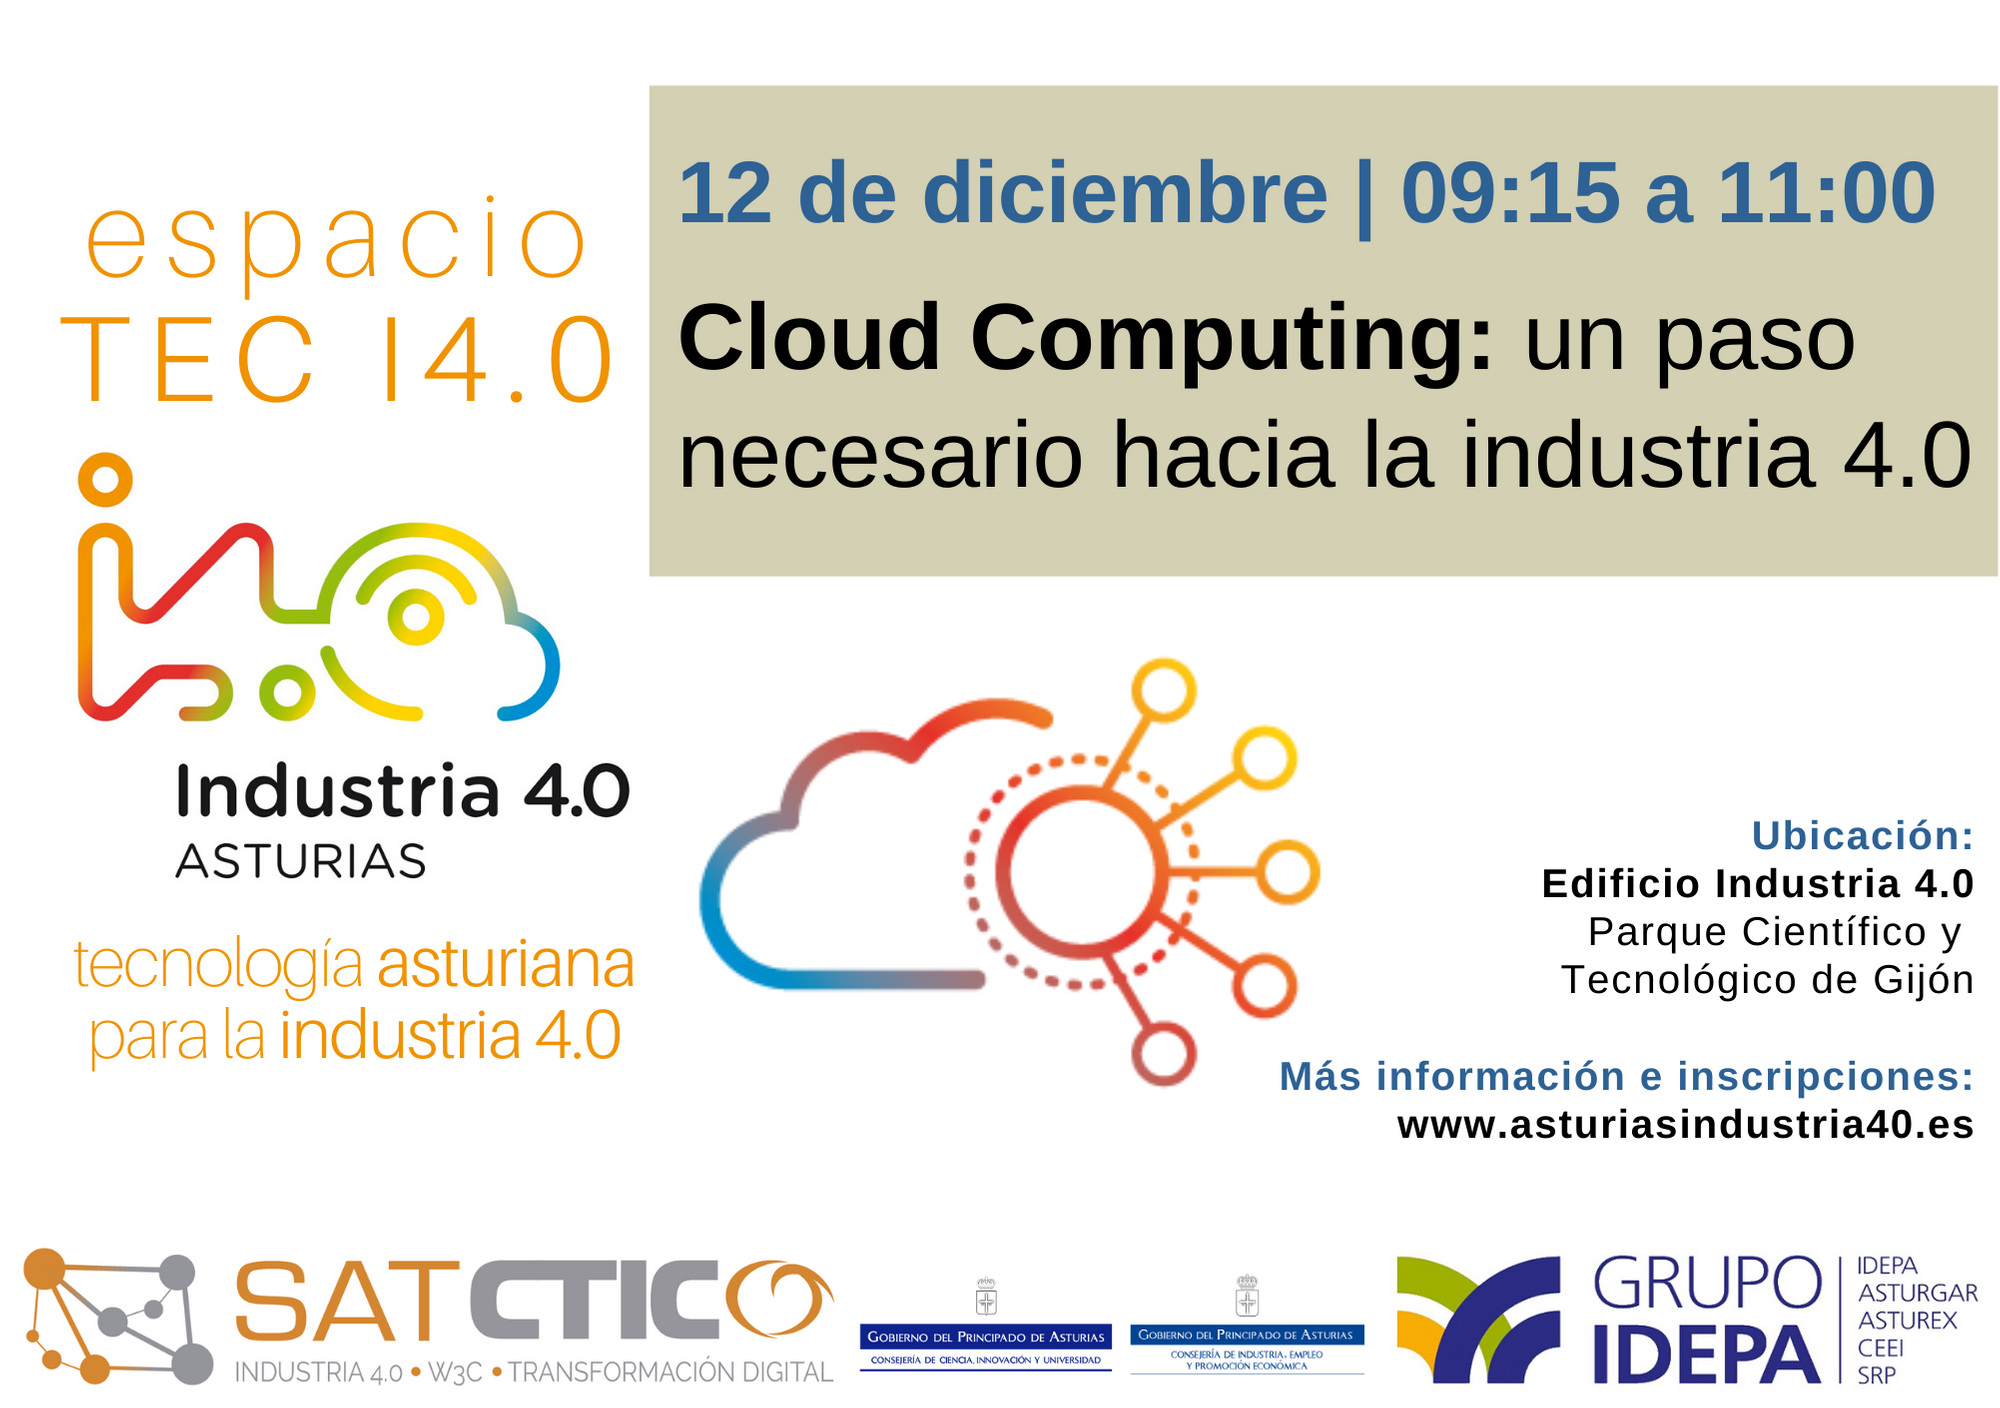 Espacio TEC I4.0 - Cloud Computing